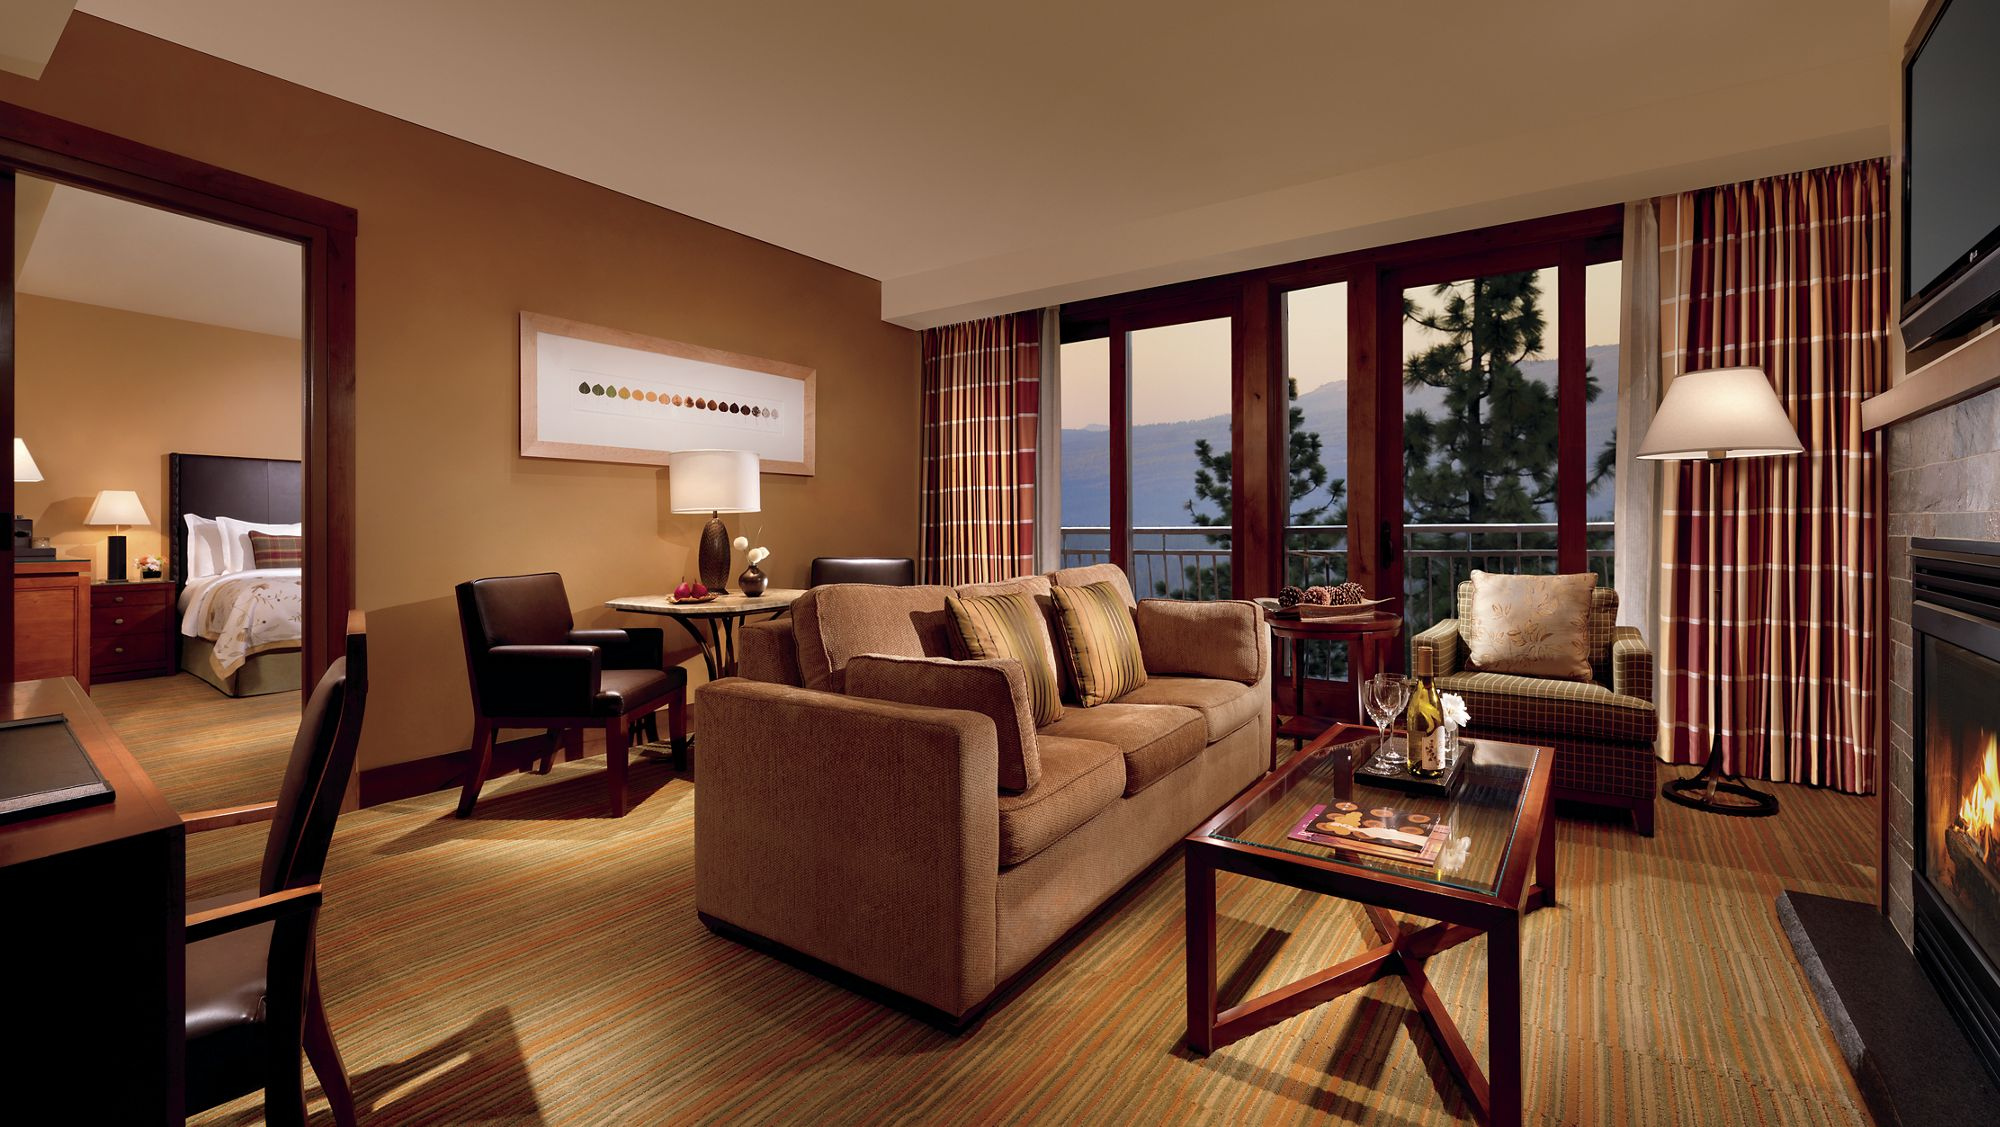 Suite living room with fireplace, flat-screen television and floor-to-ceiling windows